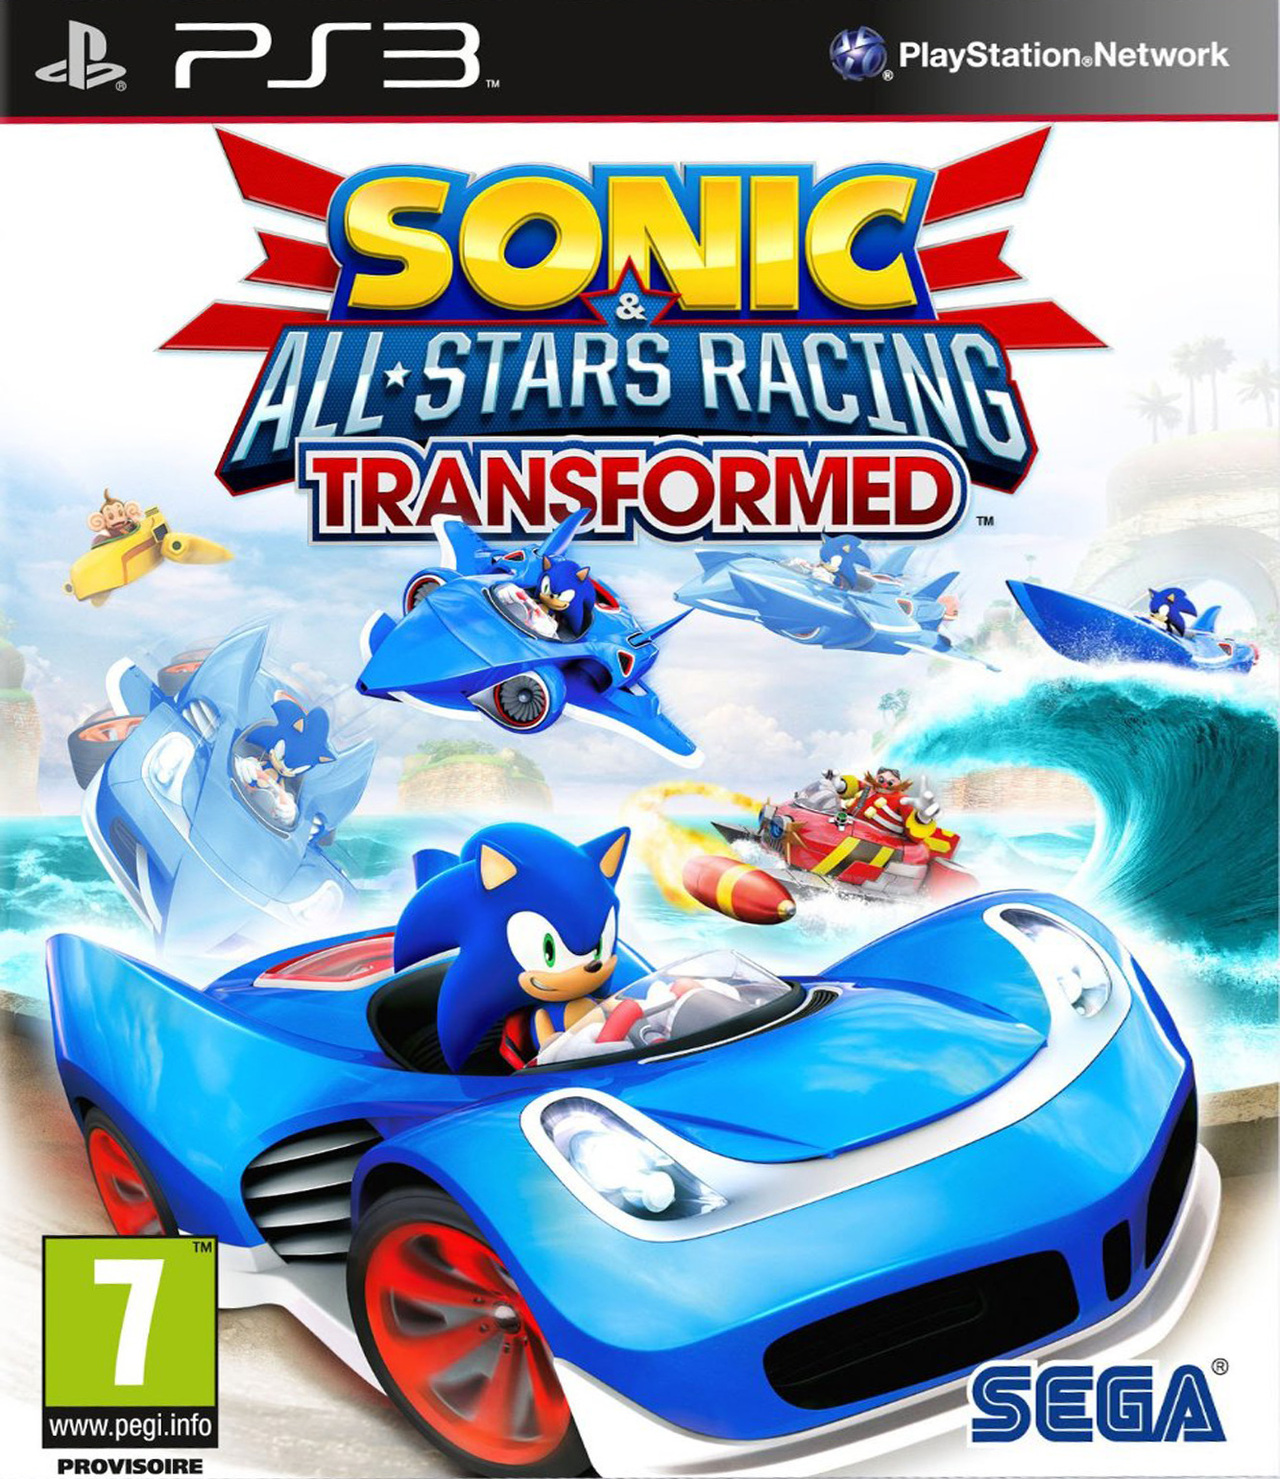 Sonic & All Stars Racing Transformed PS3 [MULTI]